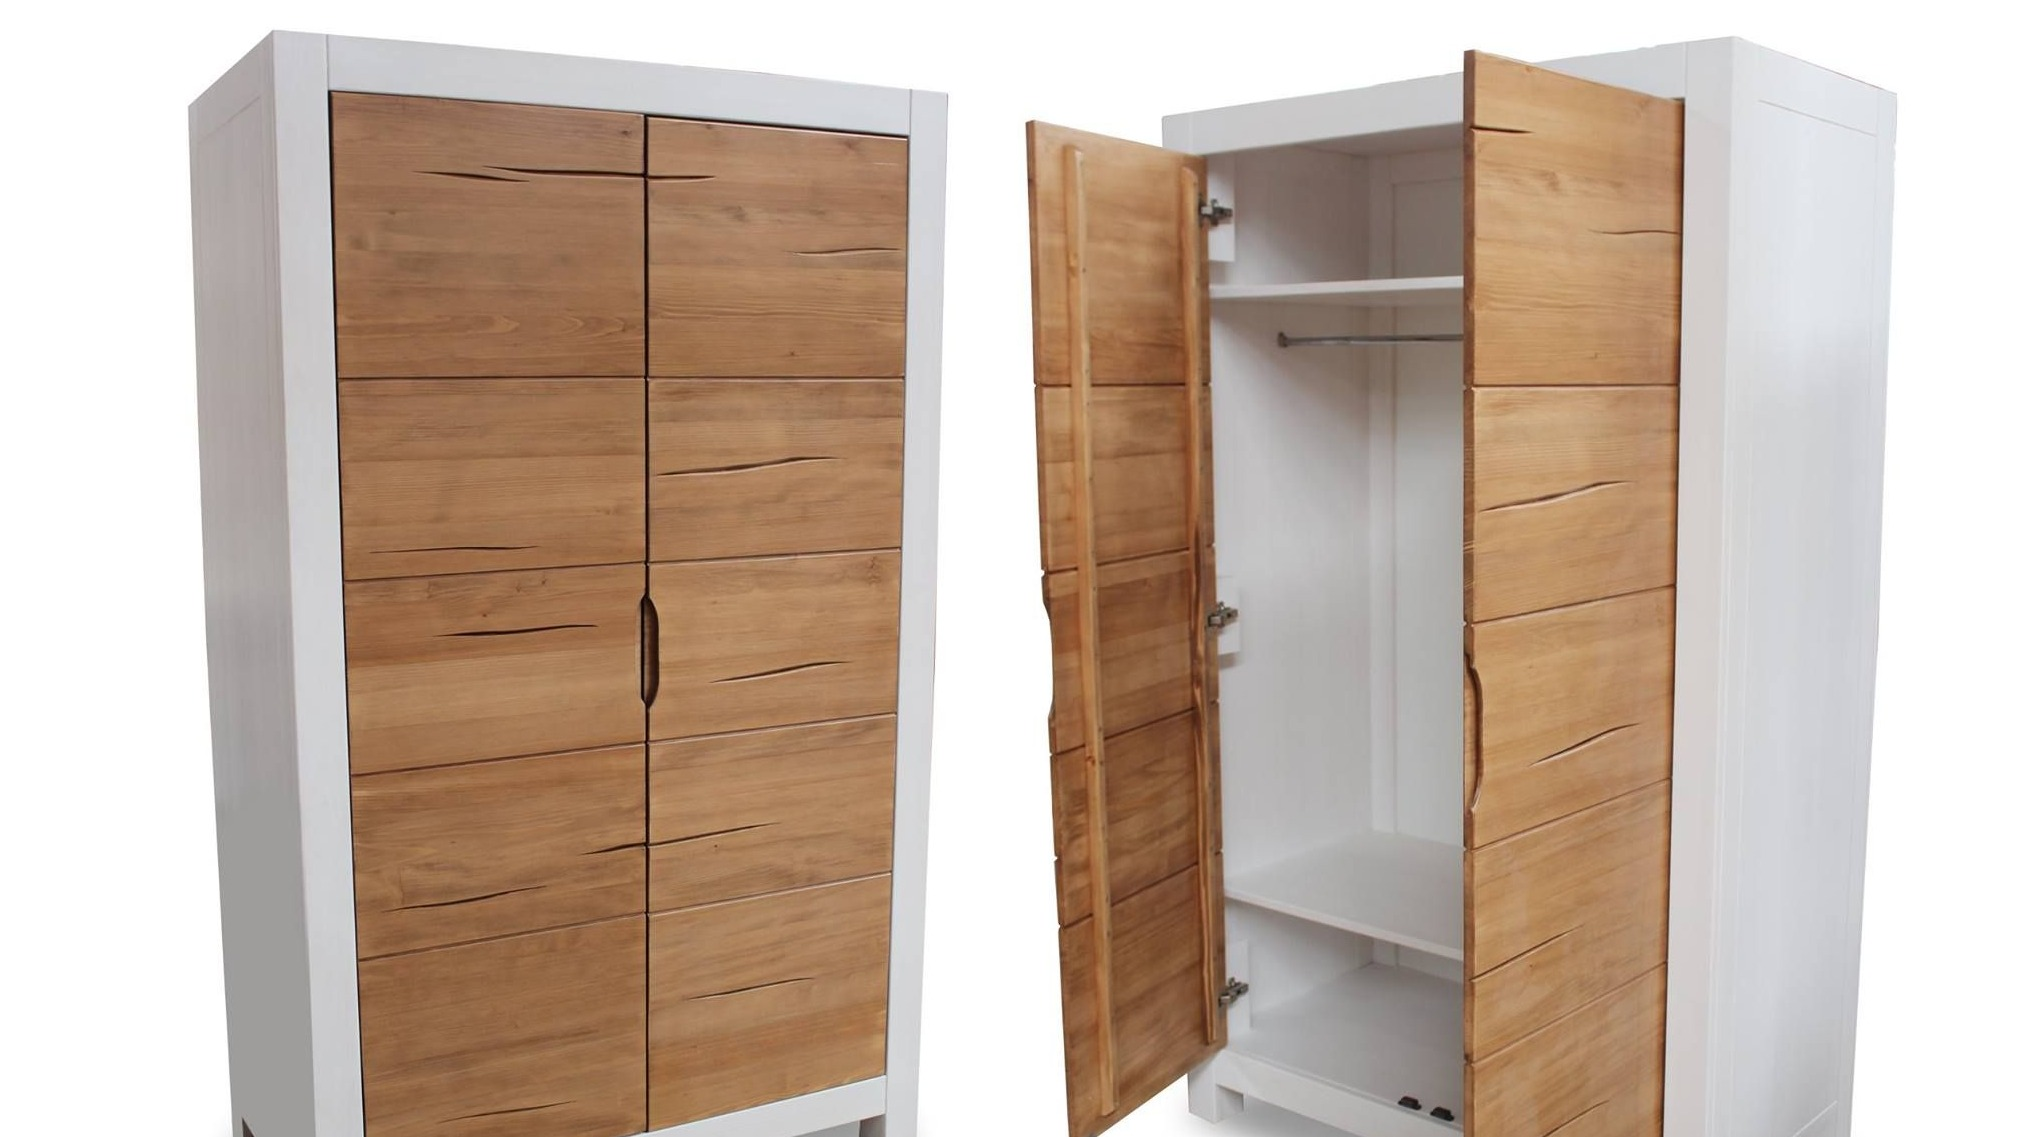 Chests of drawers and cabinets